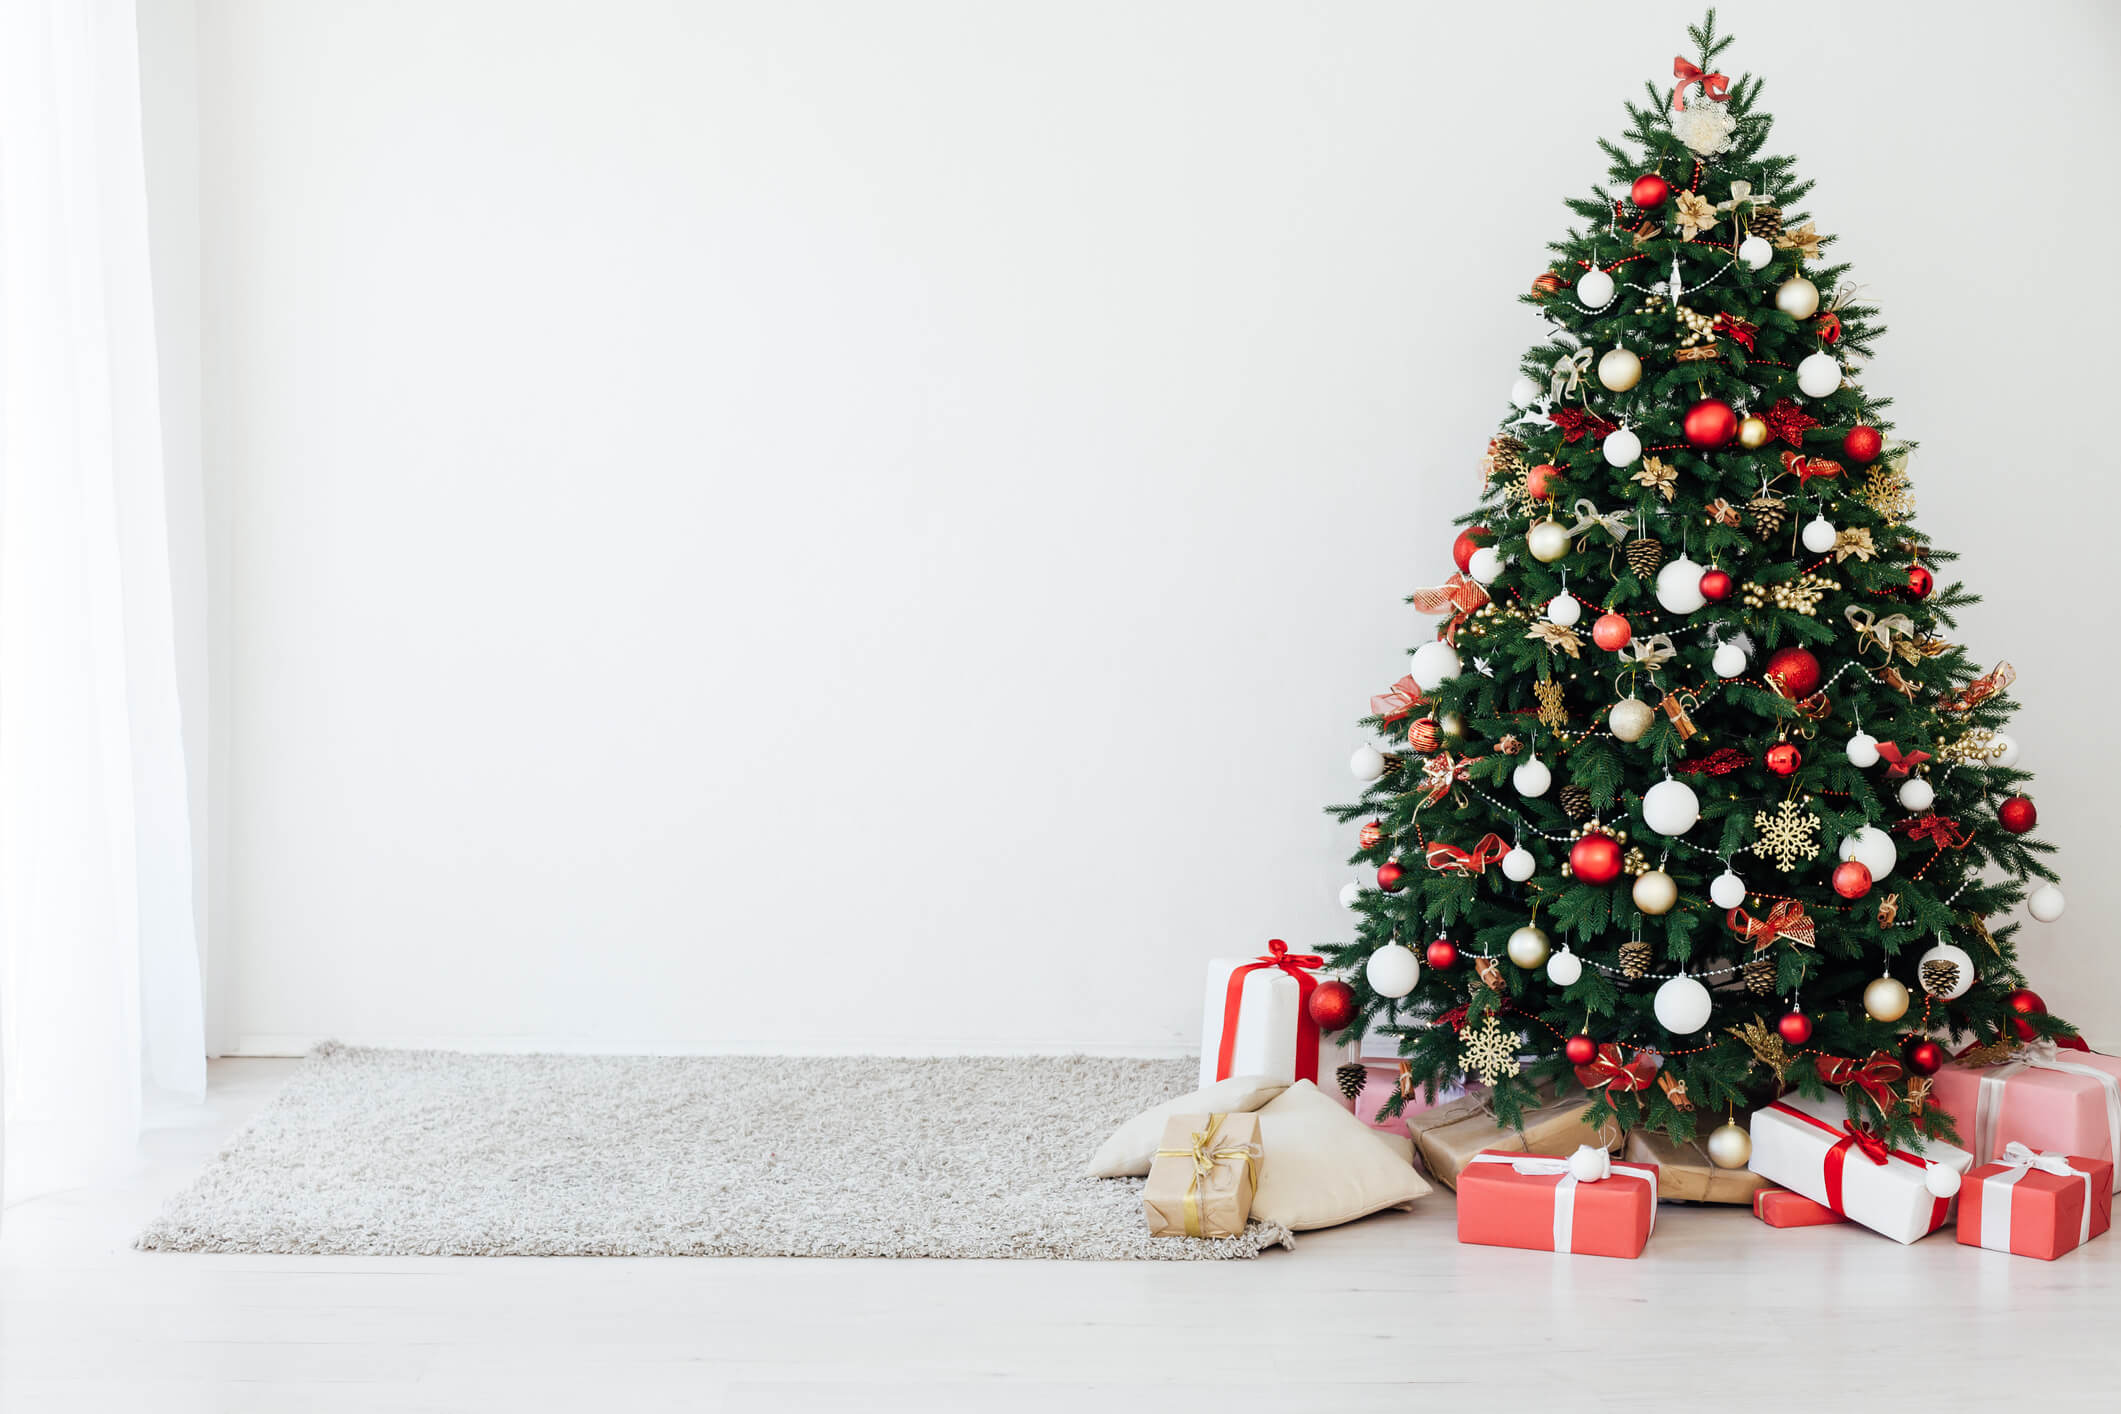 Image of previous post - 3 CHRISTMAS DECORATION ACTIVITIES FOR SENIORS WITH MEMORY DECLINE